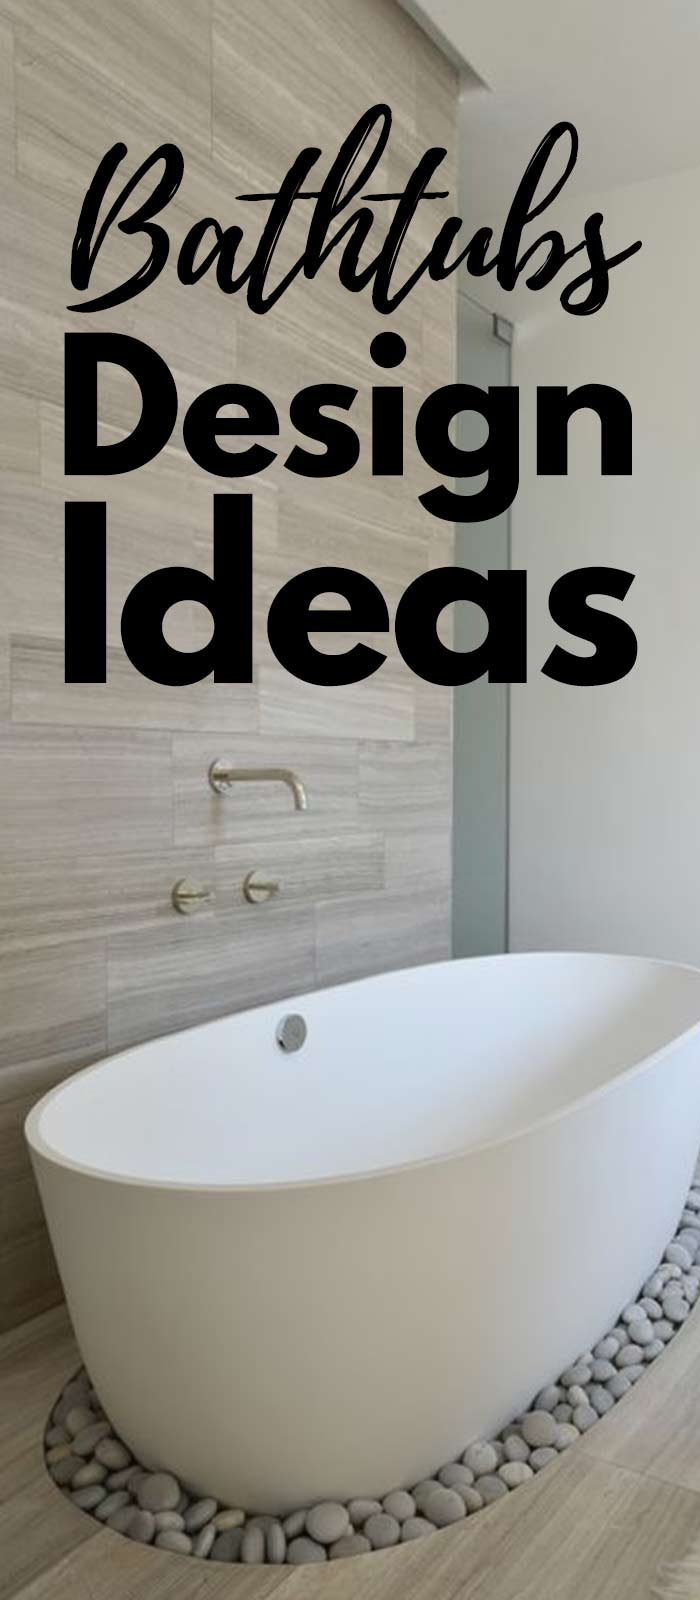 18 Magnificient Bathtubs Design Ideas!